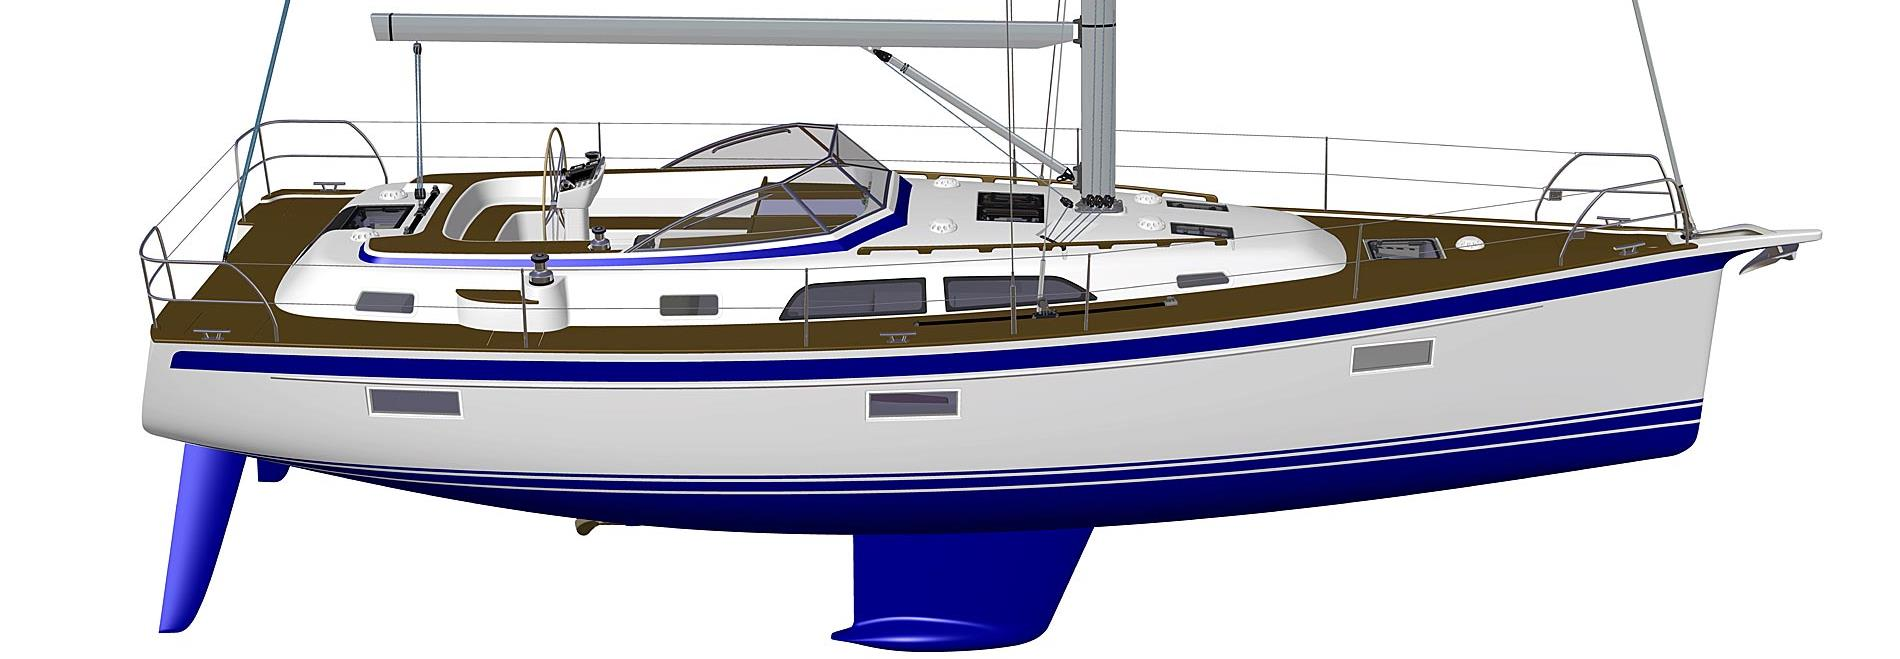 Pre-premiere for the all-new Hallberg-Rassy 40C